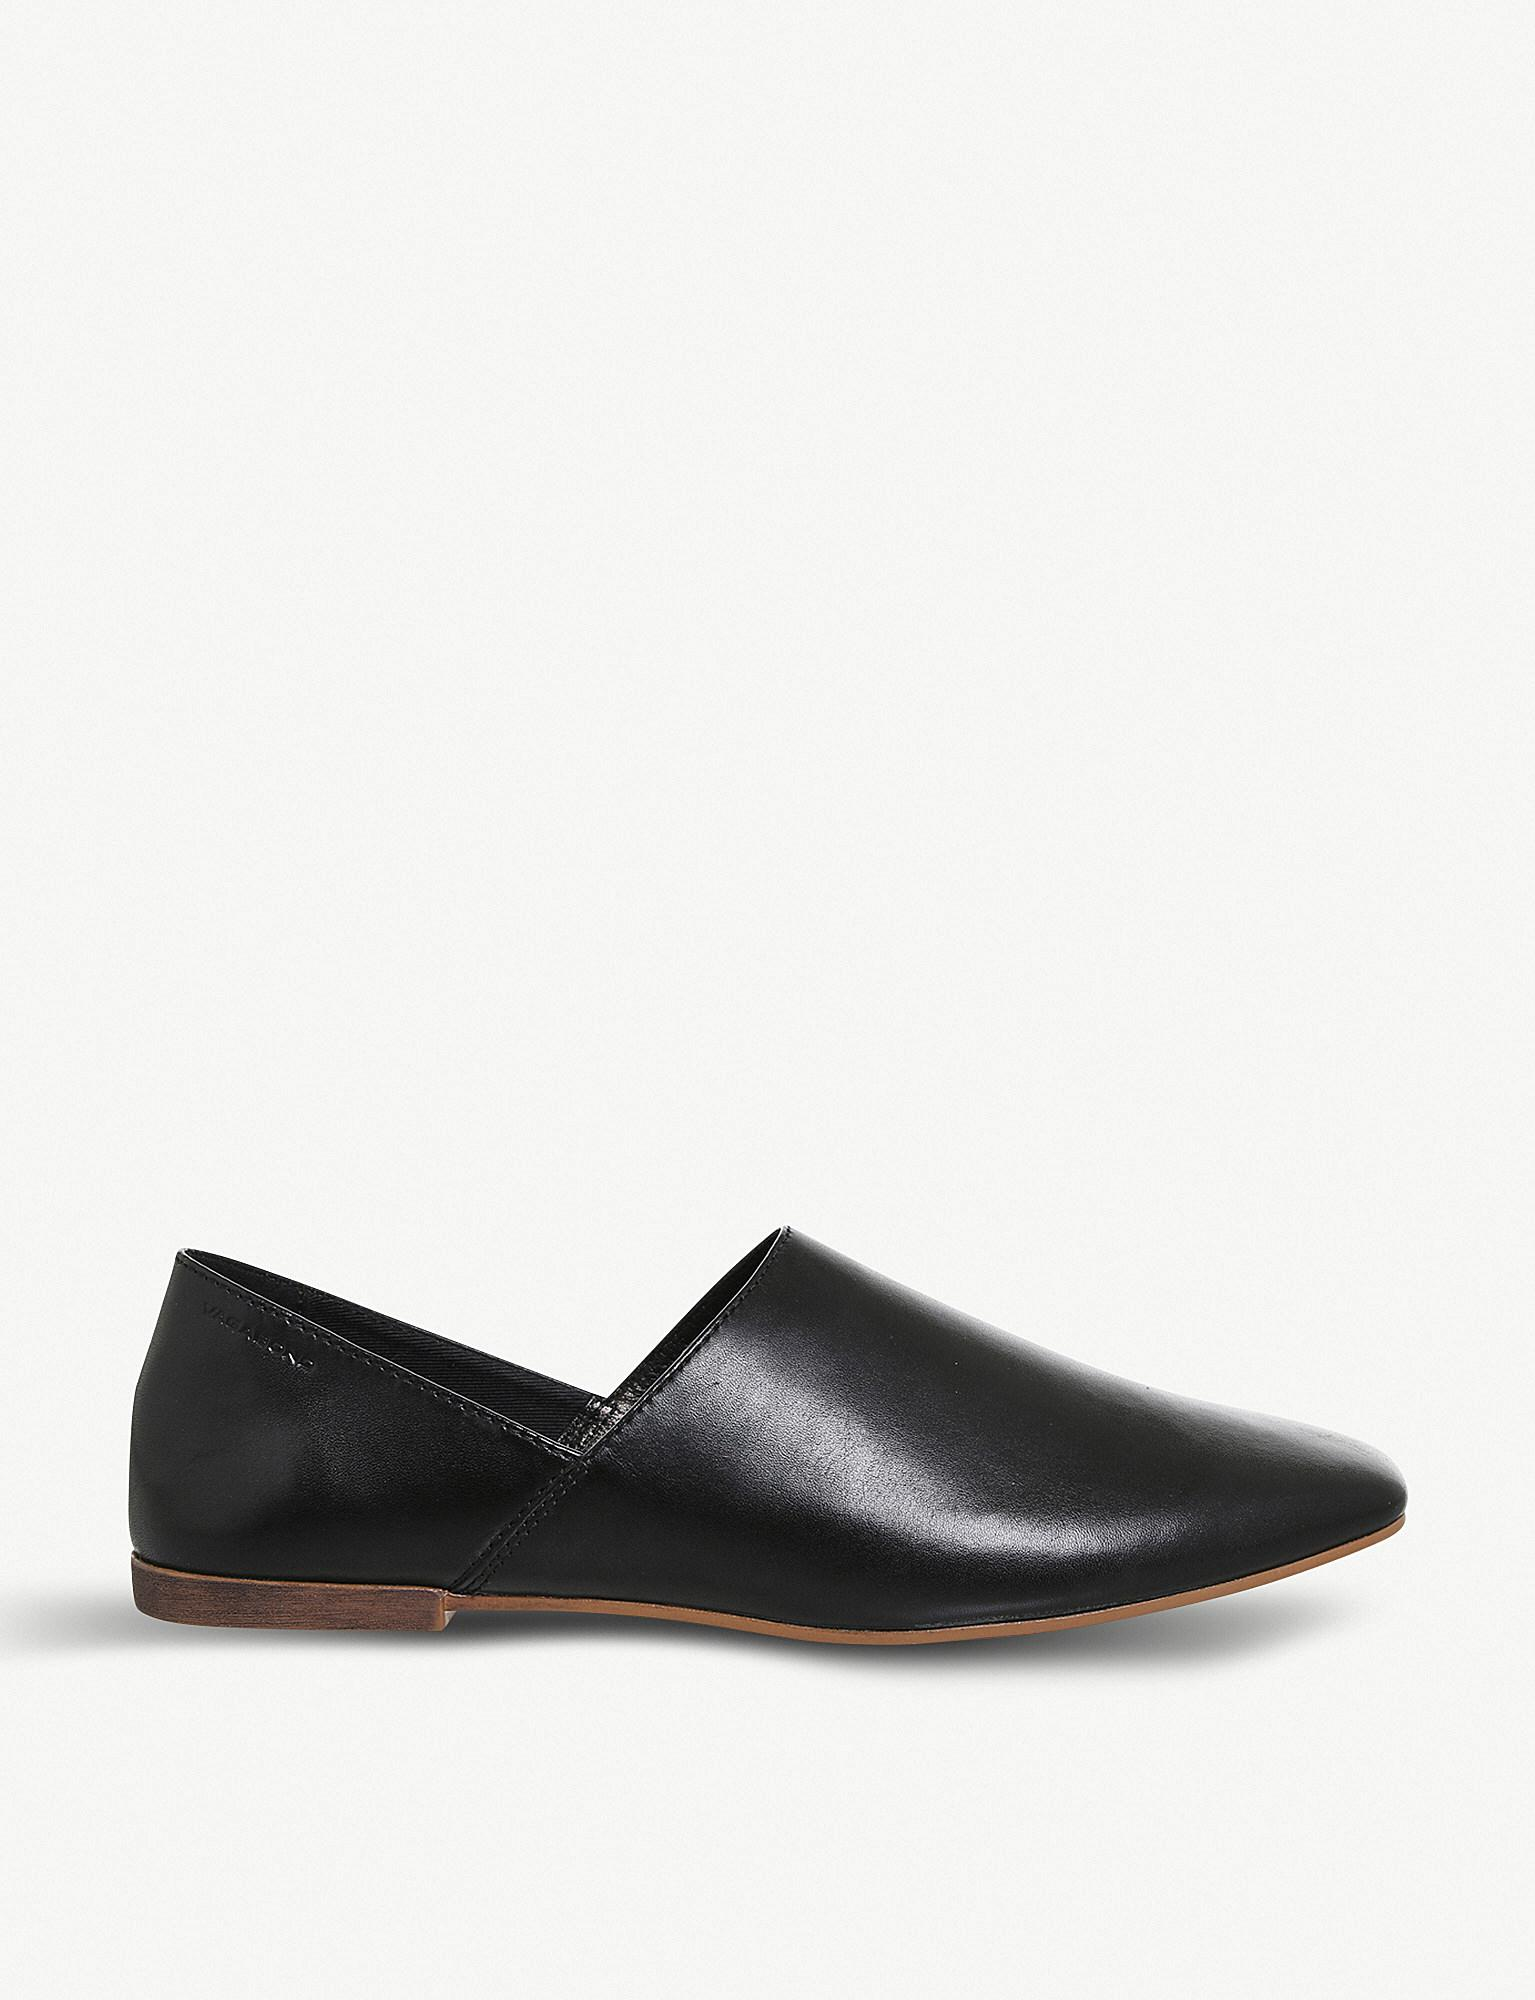 a1f38bf5523 Vagabond Ayden Leather Shoes in Black - Lyst